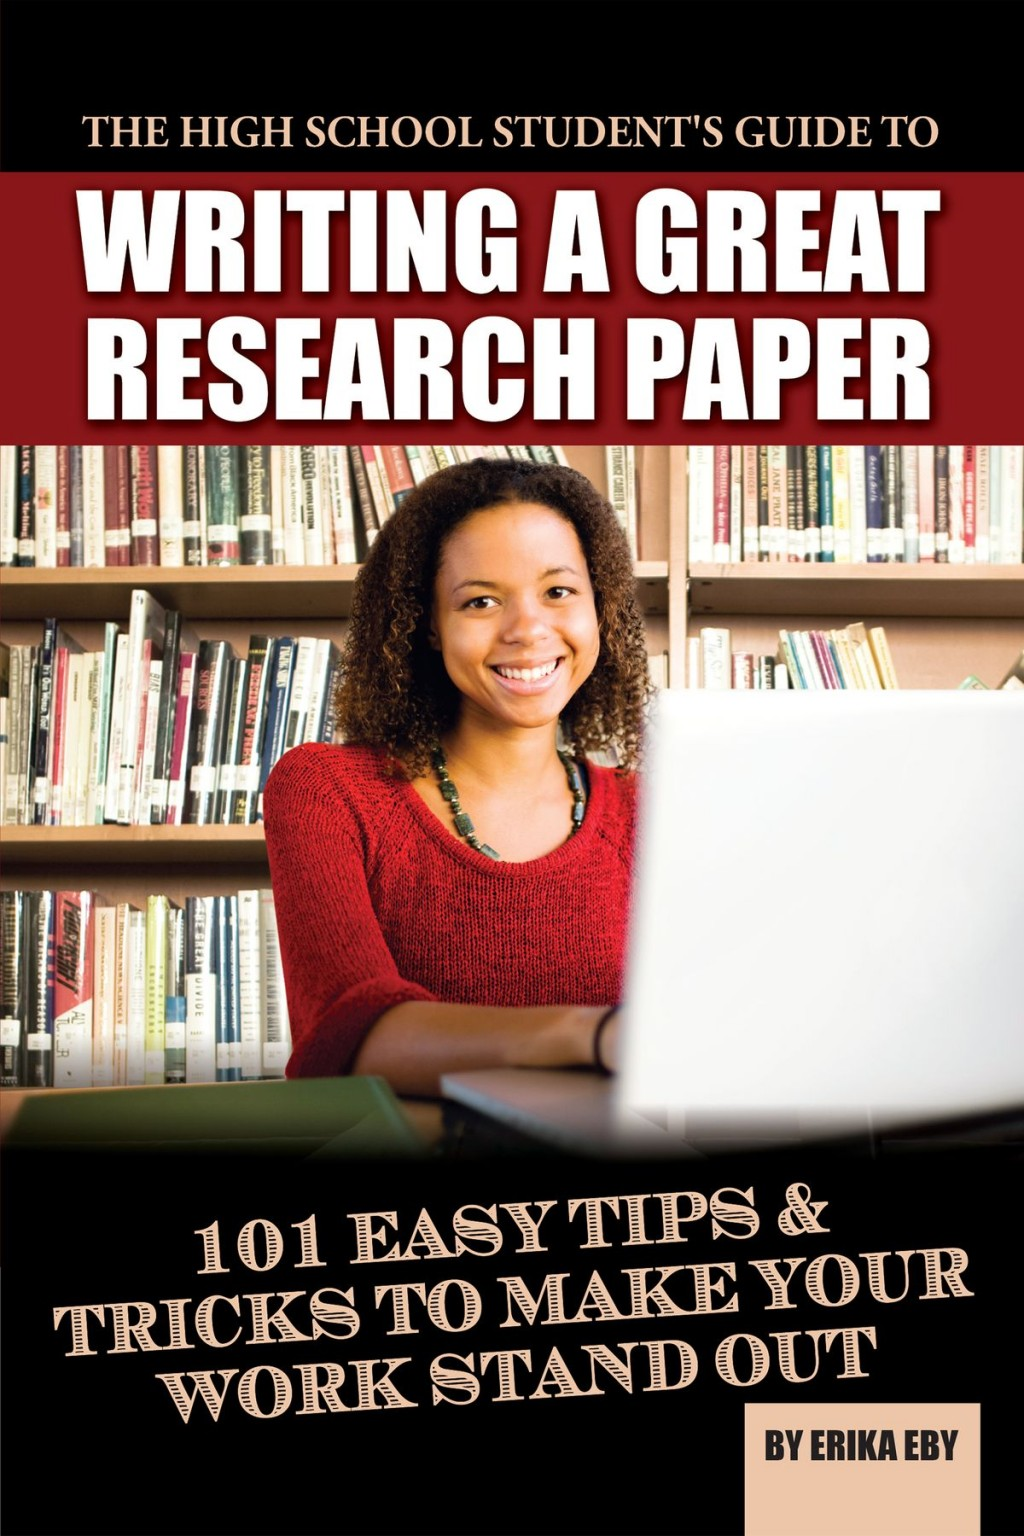 013 The High School Student S Guide To Writing Great Research Paper Easy Tips Tricks Make Your Work Stand Out How Write Best A Book Good On Large